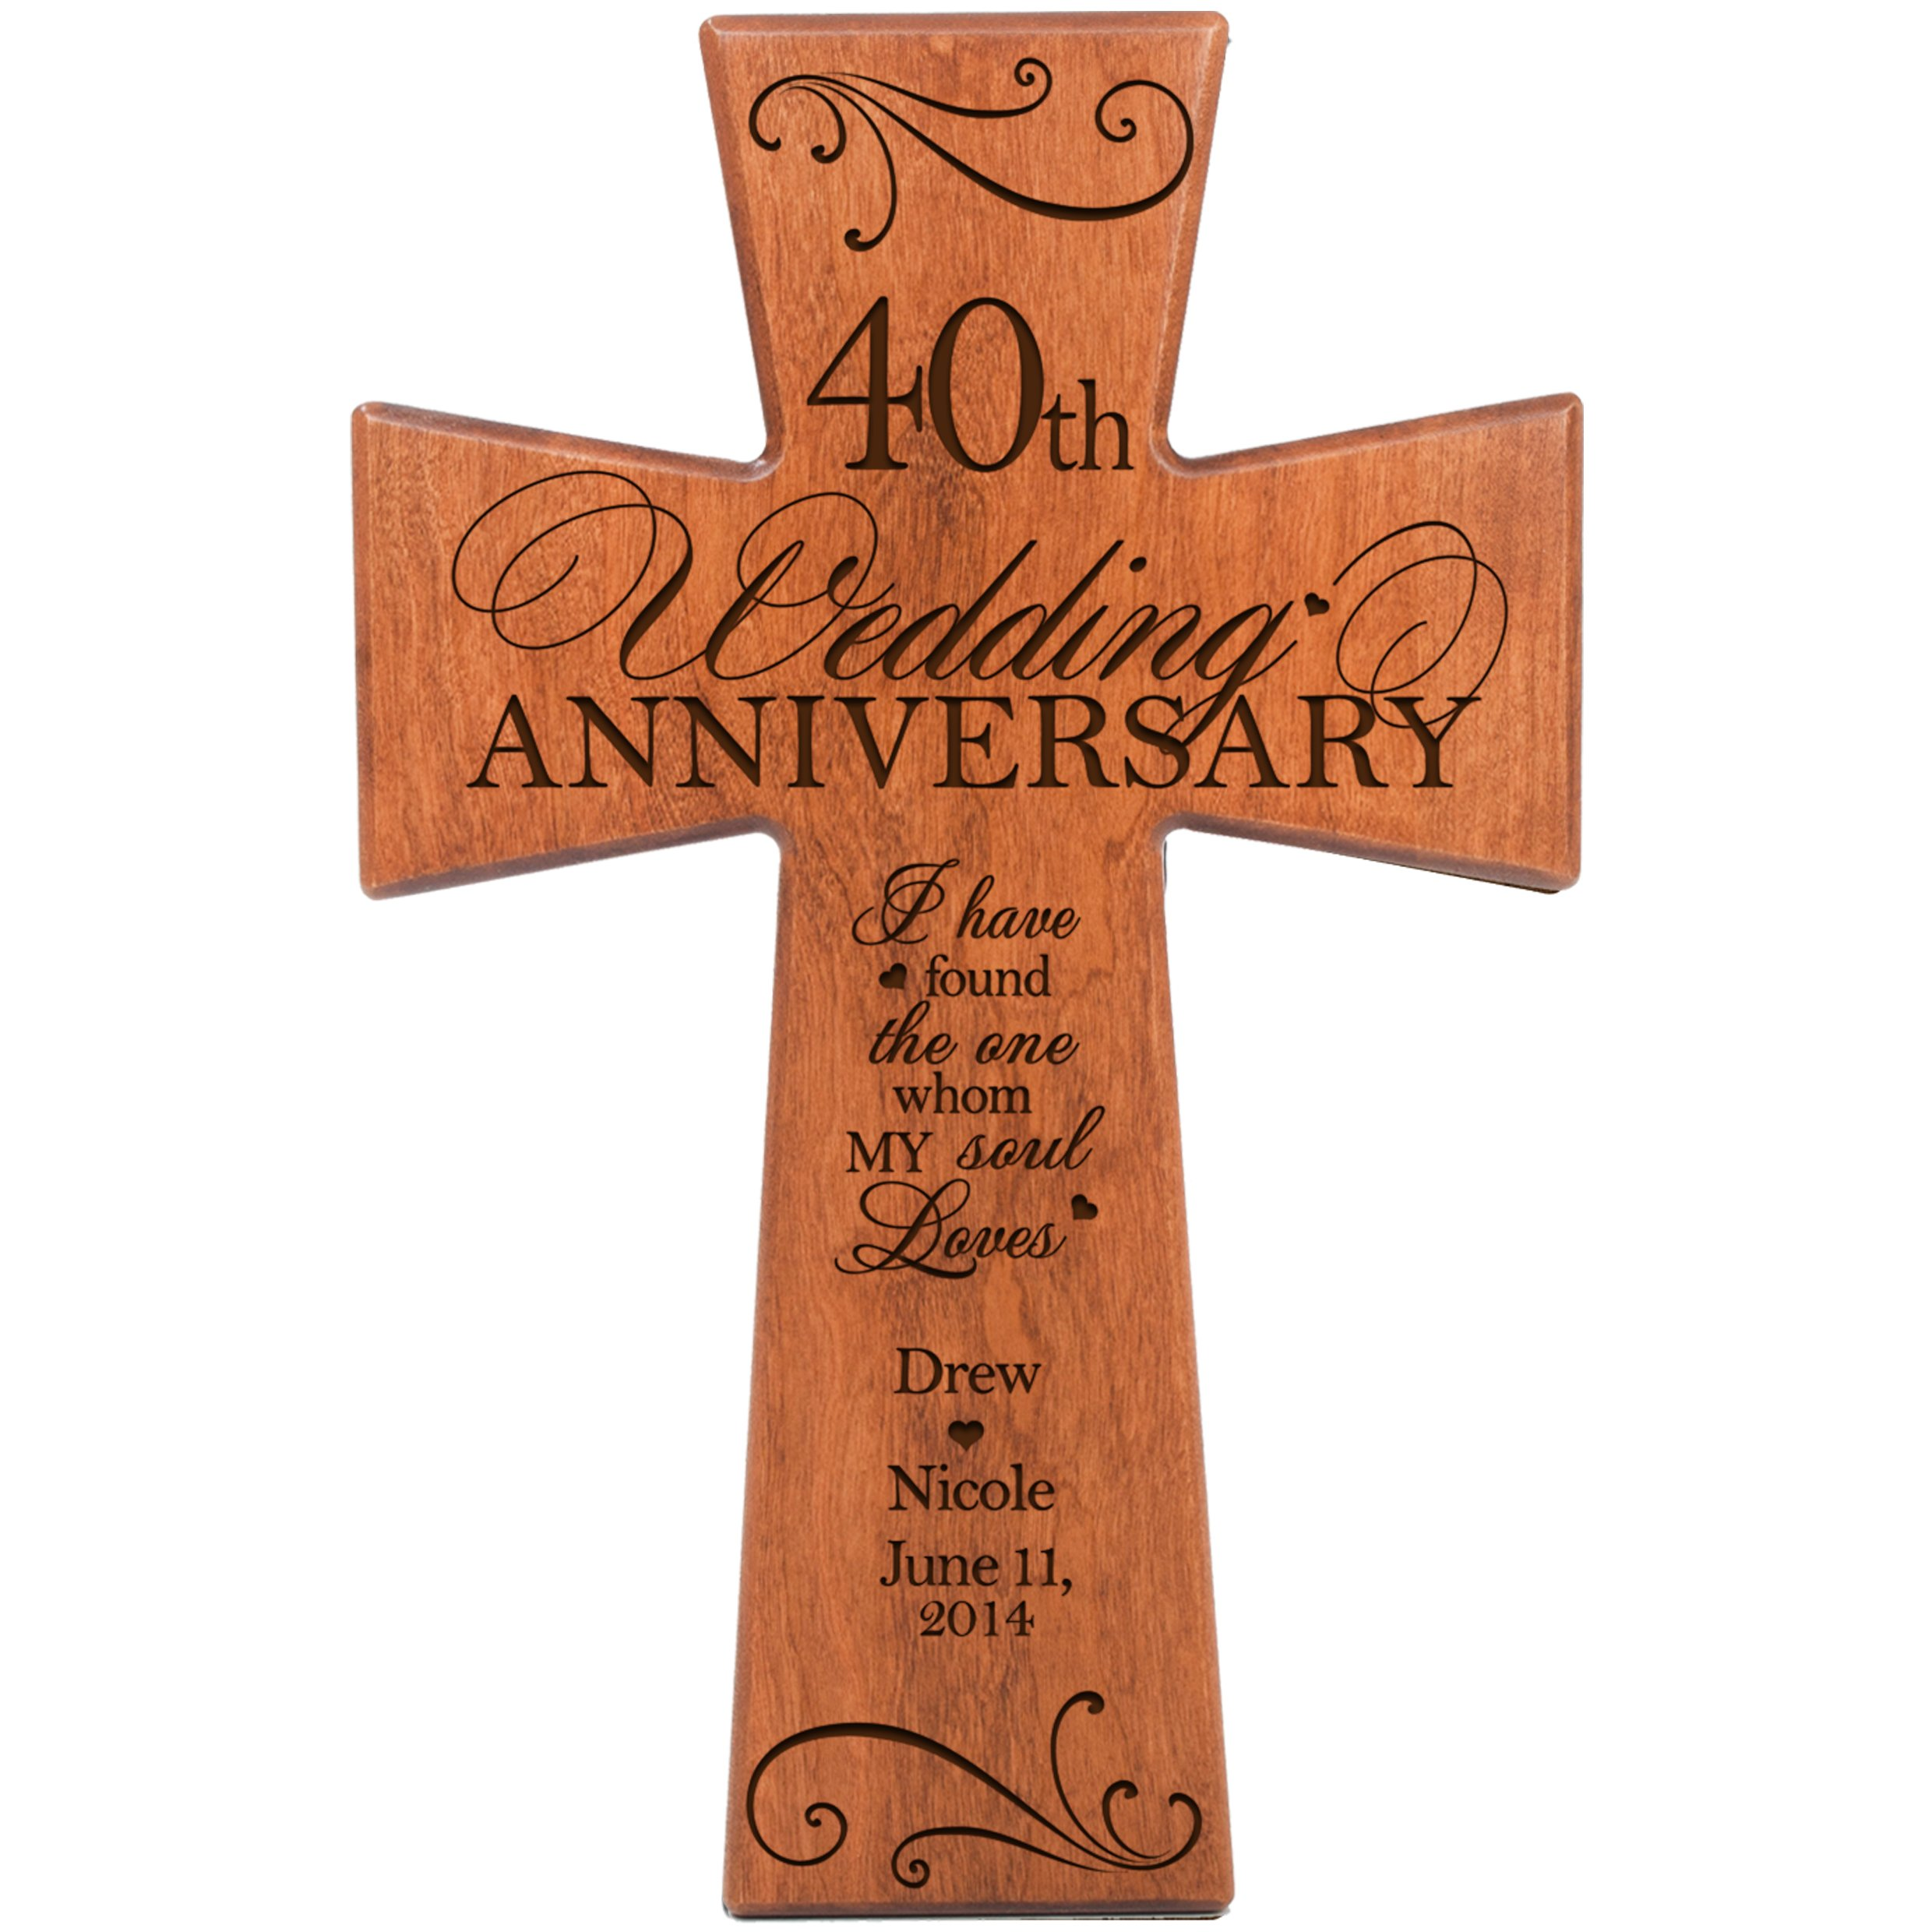 Personalized 40th Wedding Anniversary Gift for Couple Cherry Wall Cross, 40th Ruby Gifts for Her 40 year ideas for Him I Have Found the One Whom My Soul Loves by DaySpring Milestones (12x17)